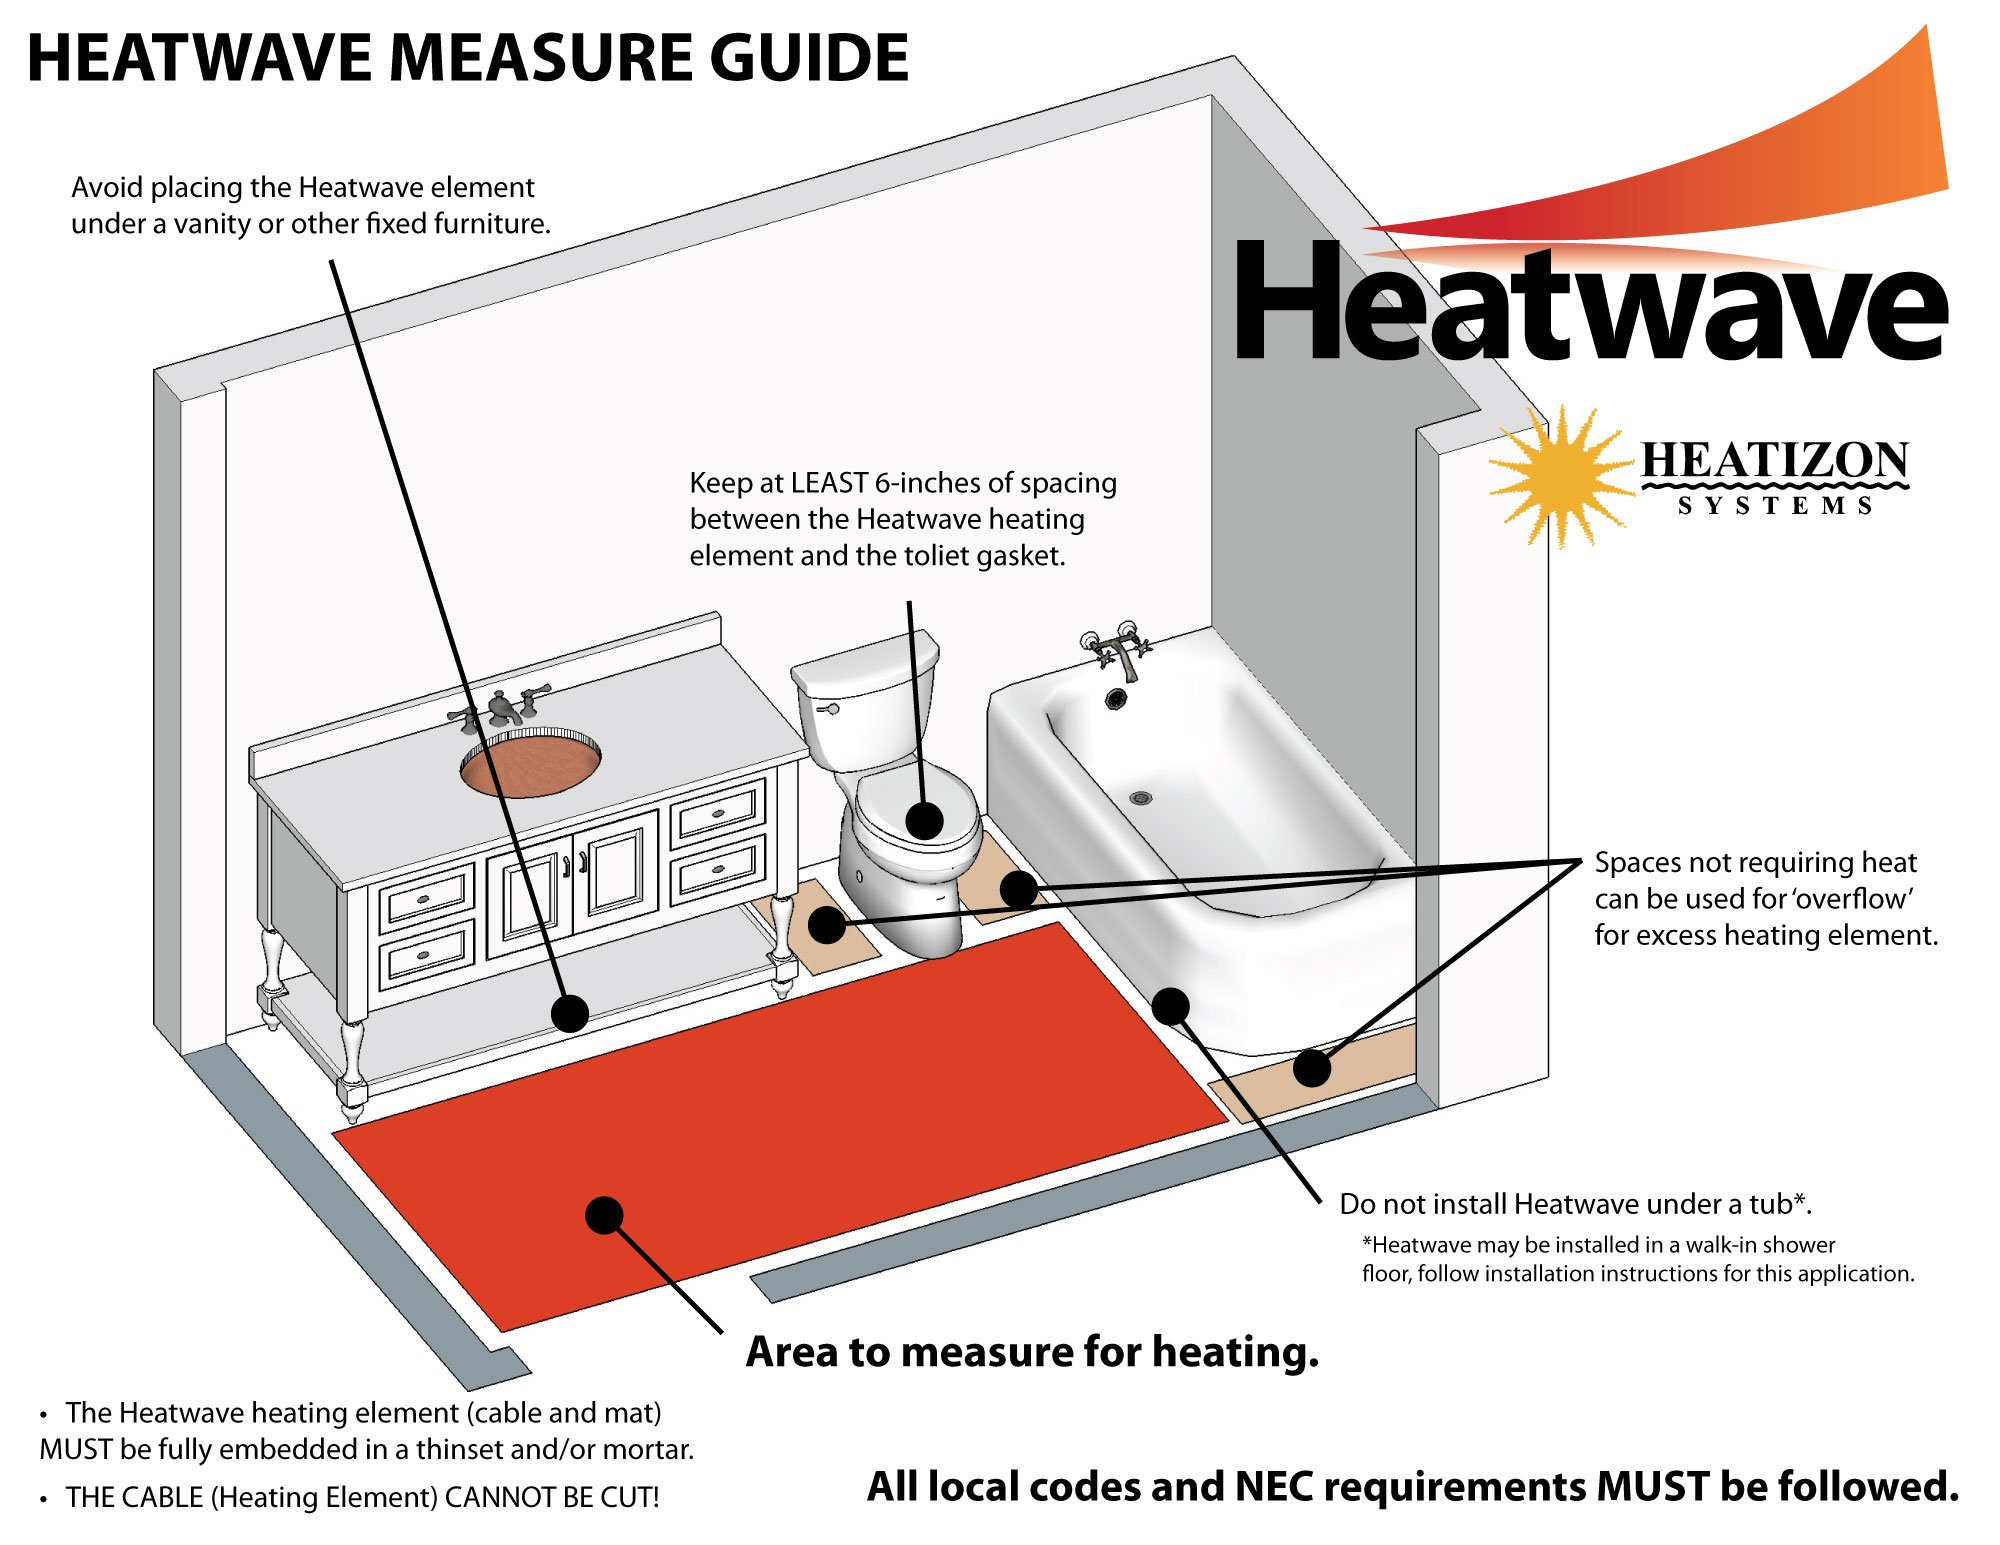 Heatwave Floor Heating Cable 120V (64-120 Square Feet) with Required GFCI Programmable Thermostat